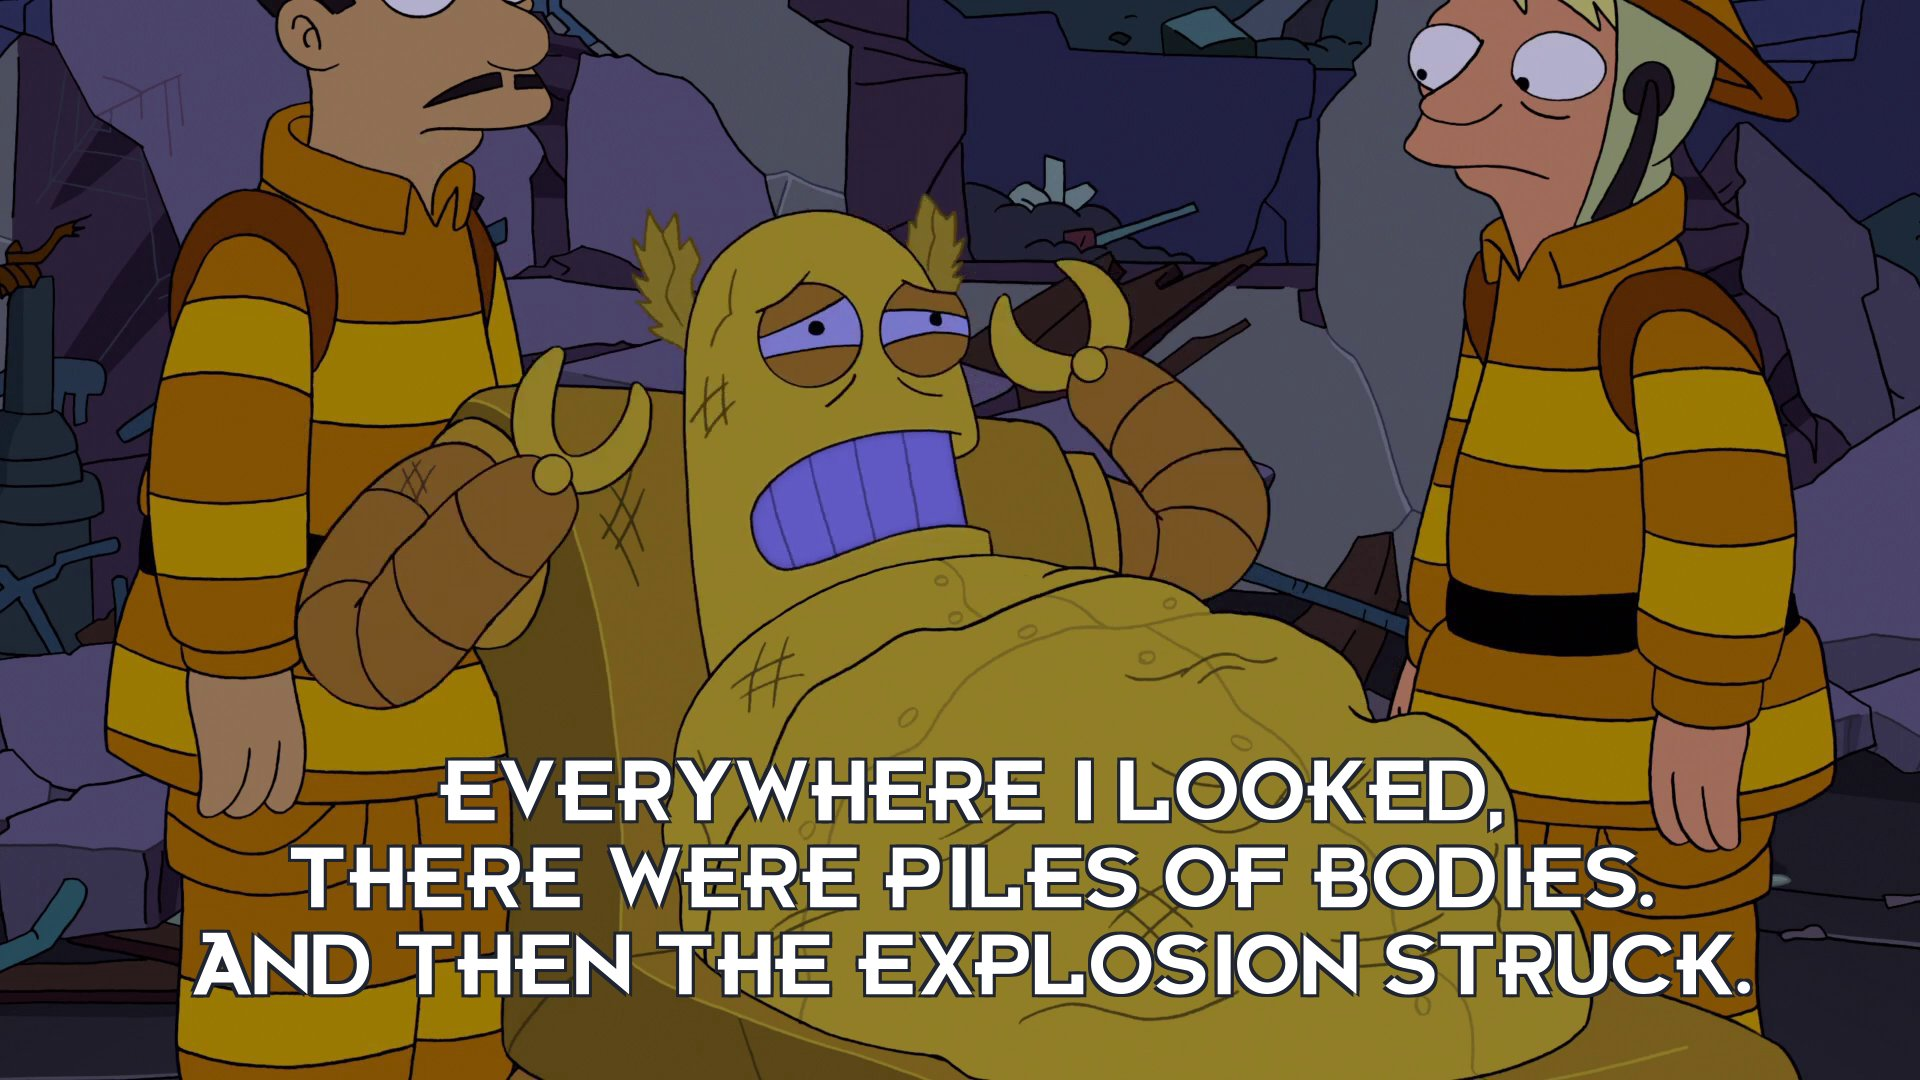 Hedonismbot: Everywhere I looked, there were piles of bodies. And then the explosion struck.